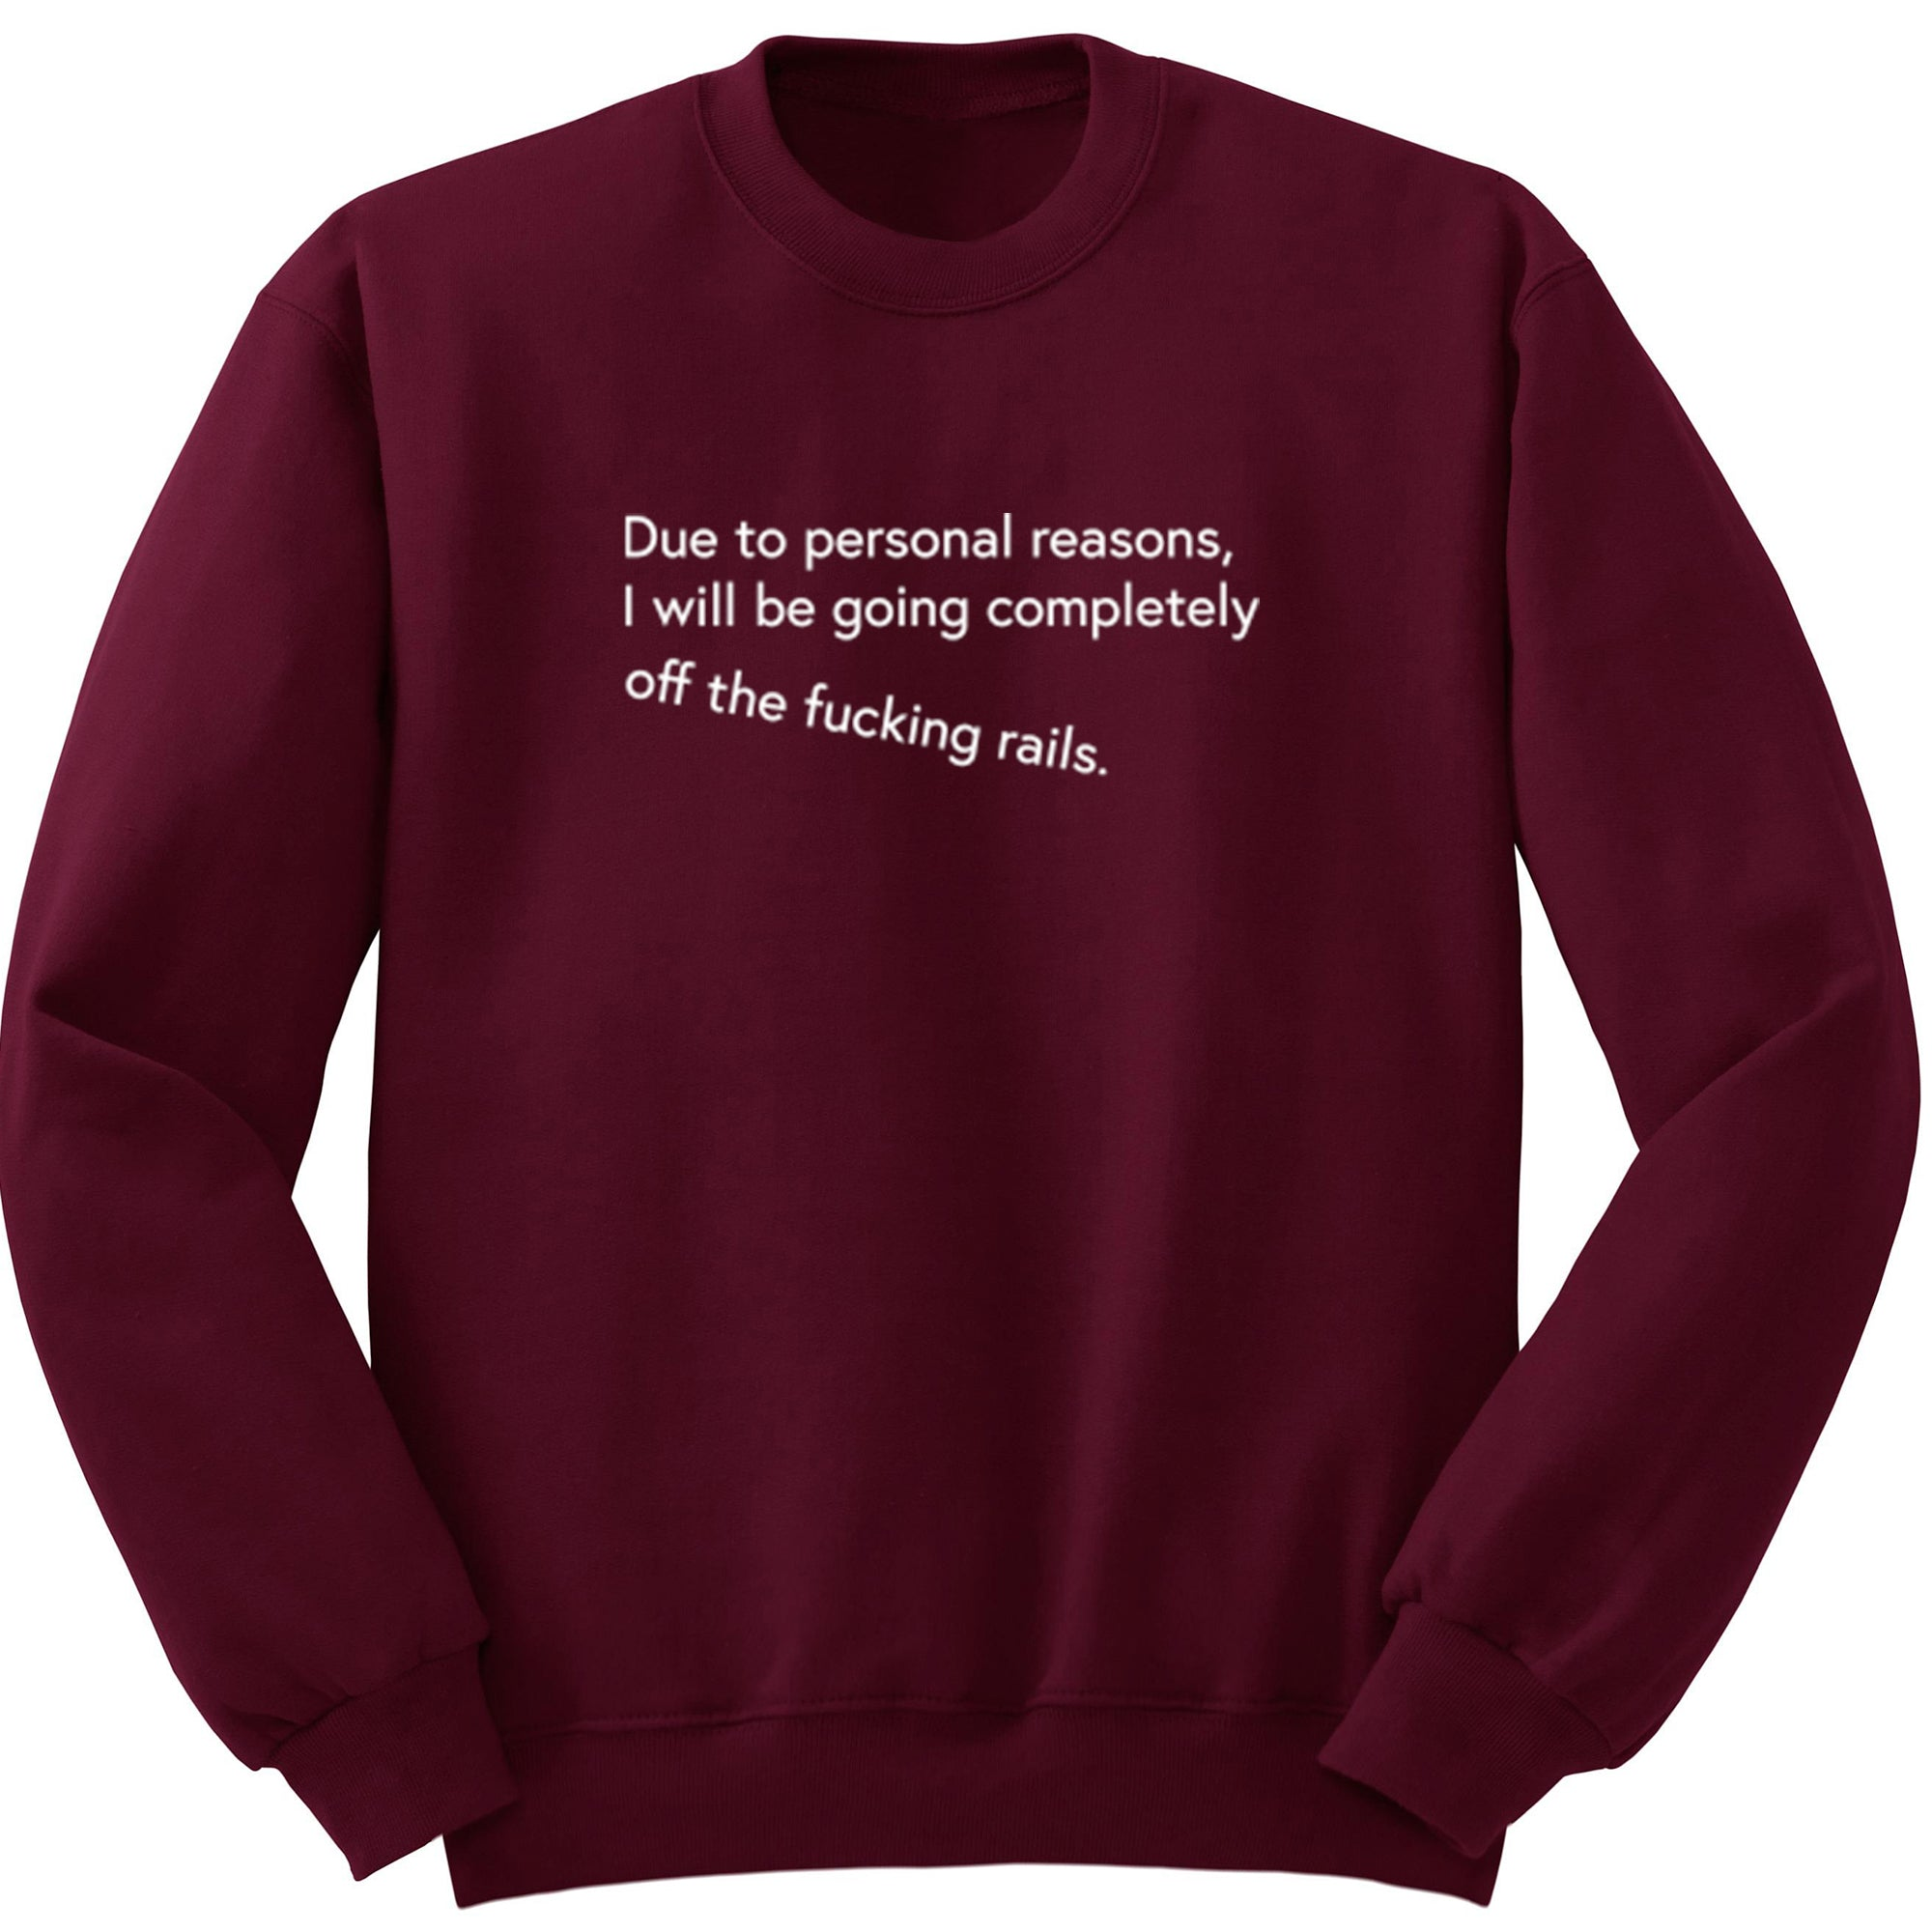 Due To Personal Reasons, I Will Be Going Completely Off The Fucking Rails Unisex Jumper A0054 - Illustrated Identity Ltd.